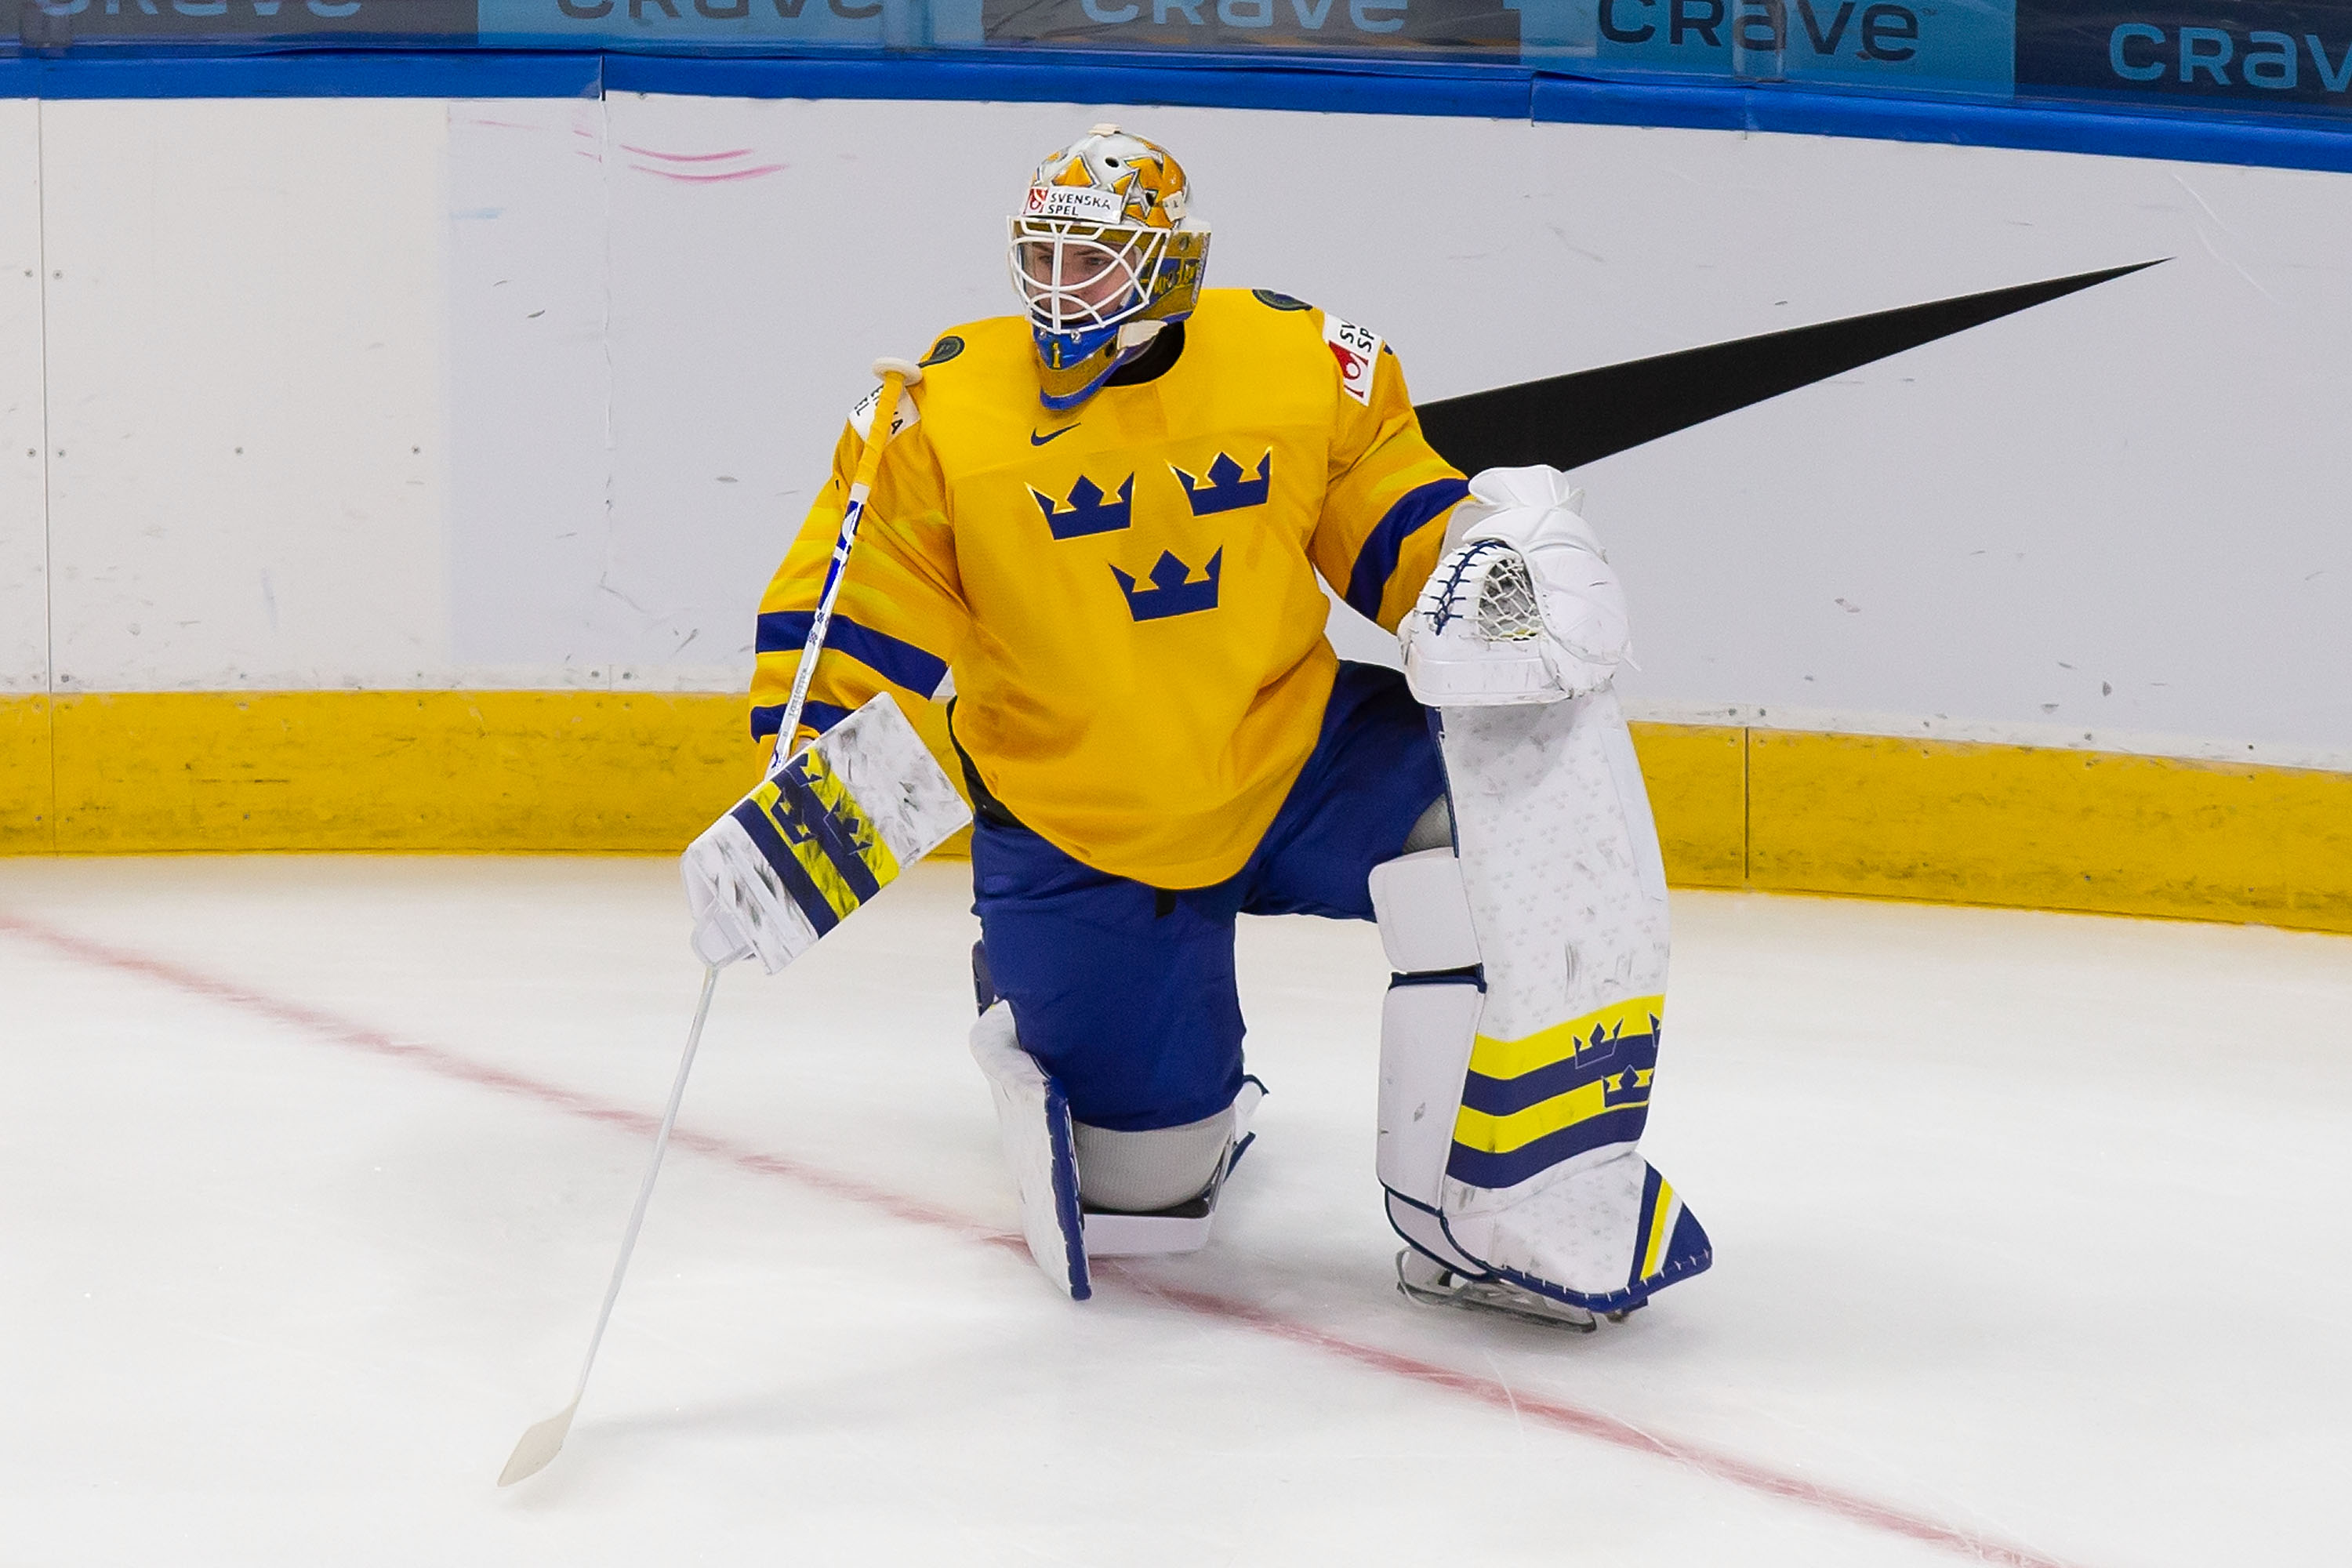 Goaltender Jesper Wallstedt #1 of Sweden skates against the Czech Republic during the 2021 IIHF World Junior Championship at Rogers Place on December 26, 2020 in Edmonton, Canada.